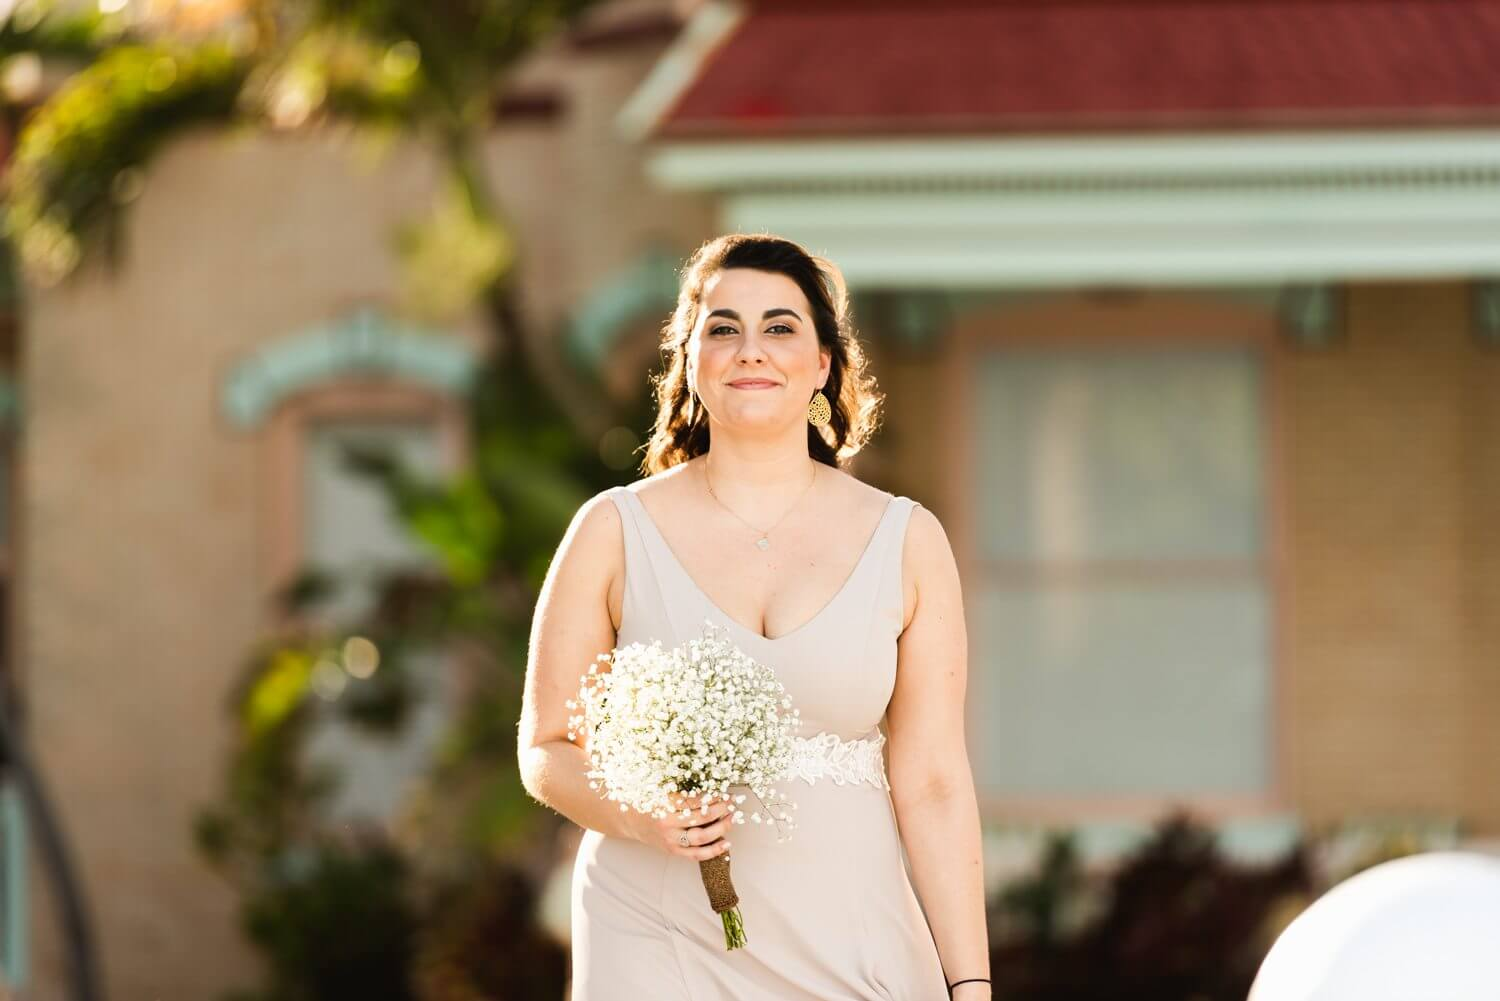 Freas Photography Southernmost House Wedding 89 - Boho Styled Key West Wedding at the Southernmost House in Key West, Florida